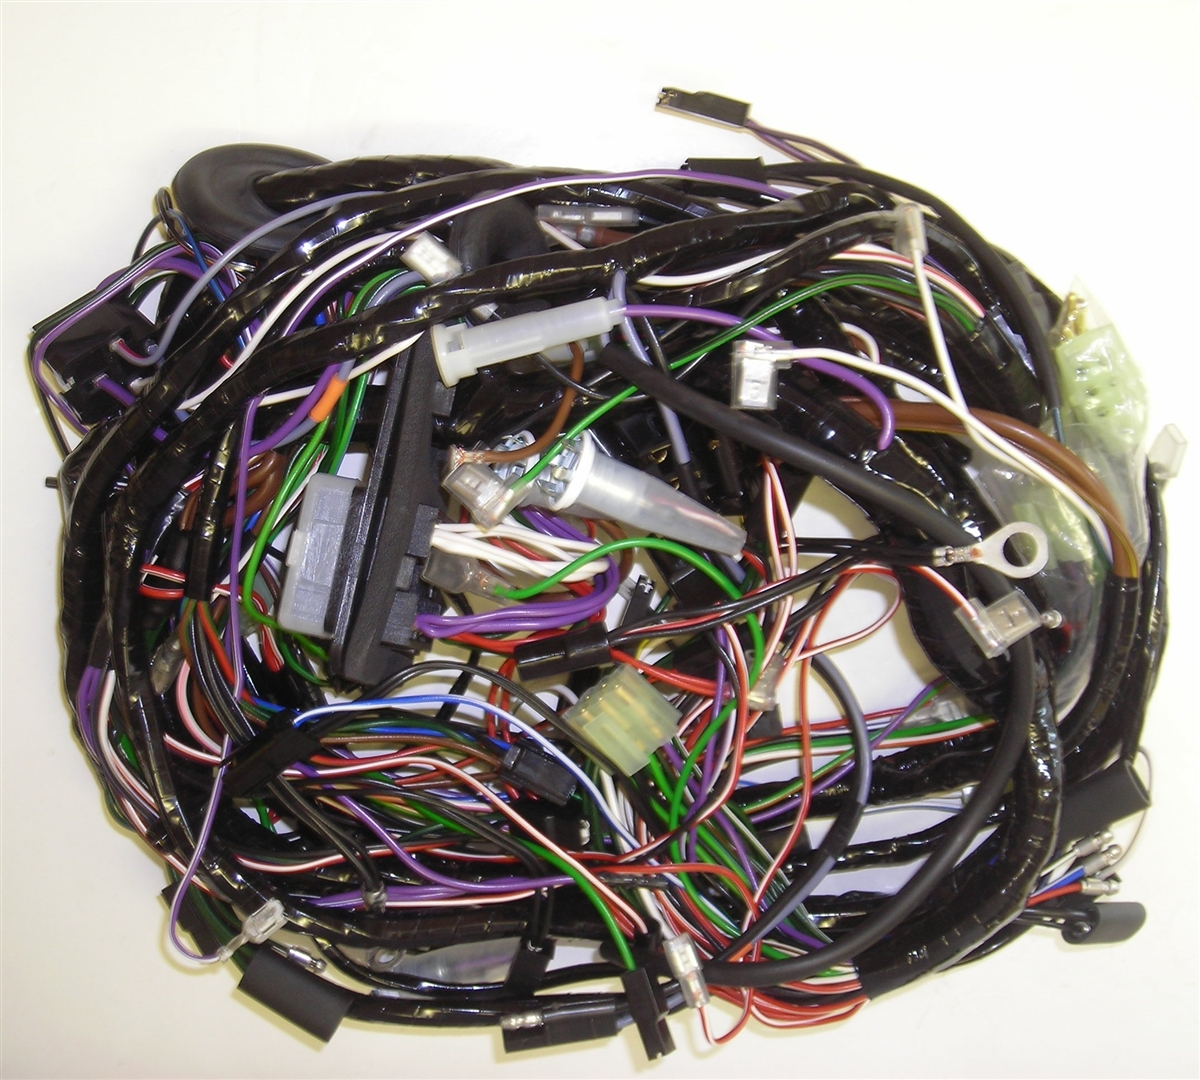 1531(3) 2?1443618008 spitfire1500 main wiring harness 73 triumph spitfire 1500 wiring harness at sewacar.co